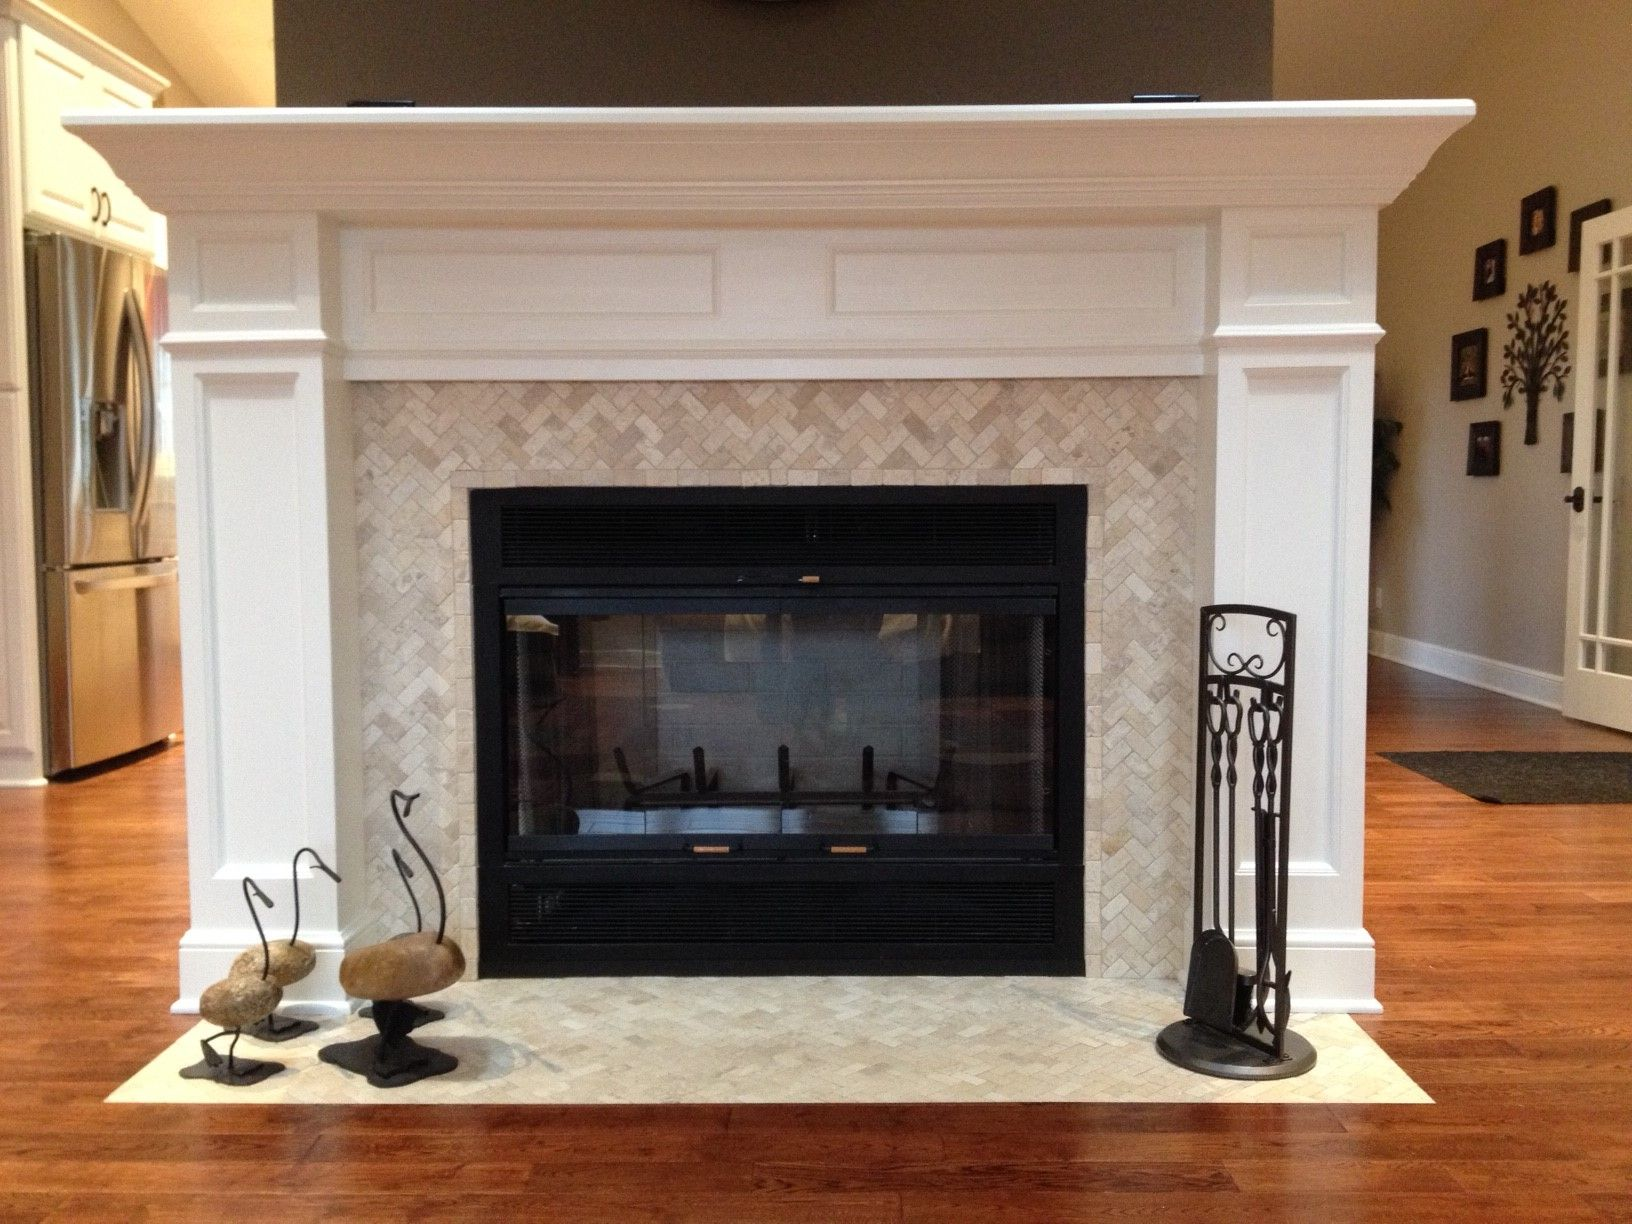 Cream Herringbone Stone Mosaic Tile Mosaic Fireplace Fireplace Surrounds And Stone Mosaic